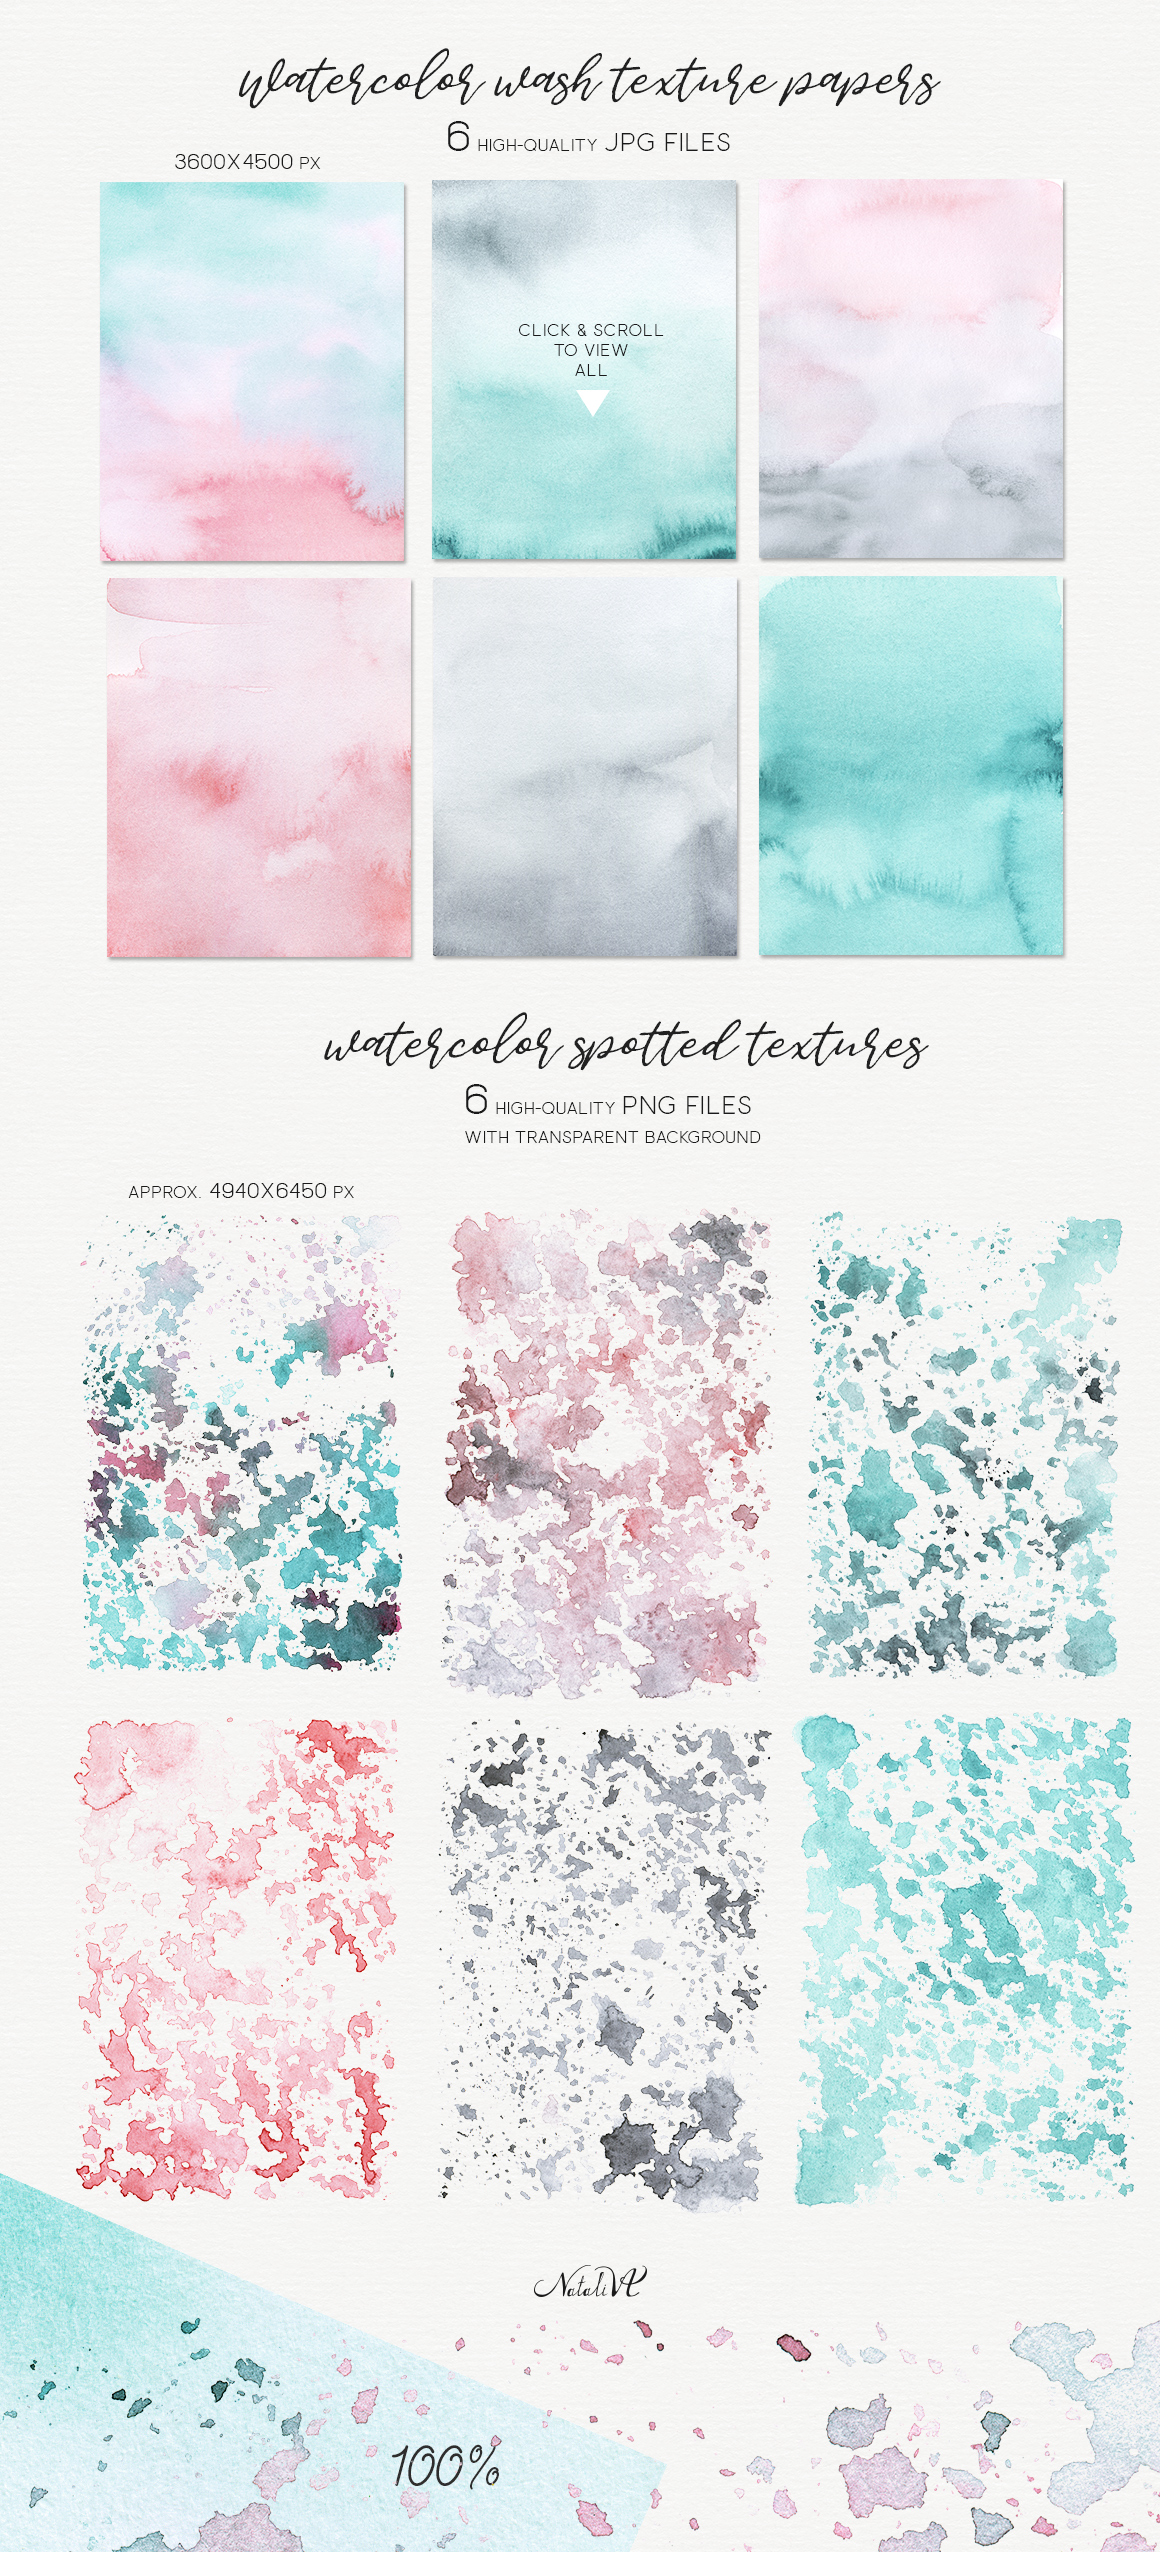 Watercolor Textures - Pastel